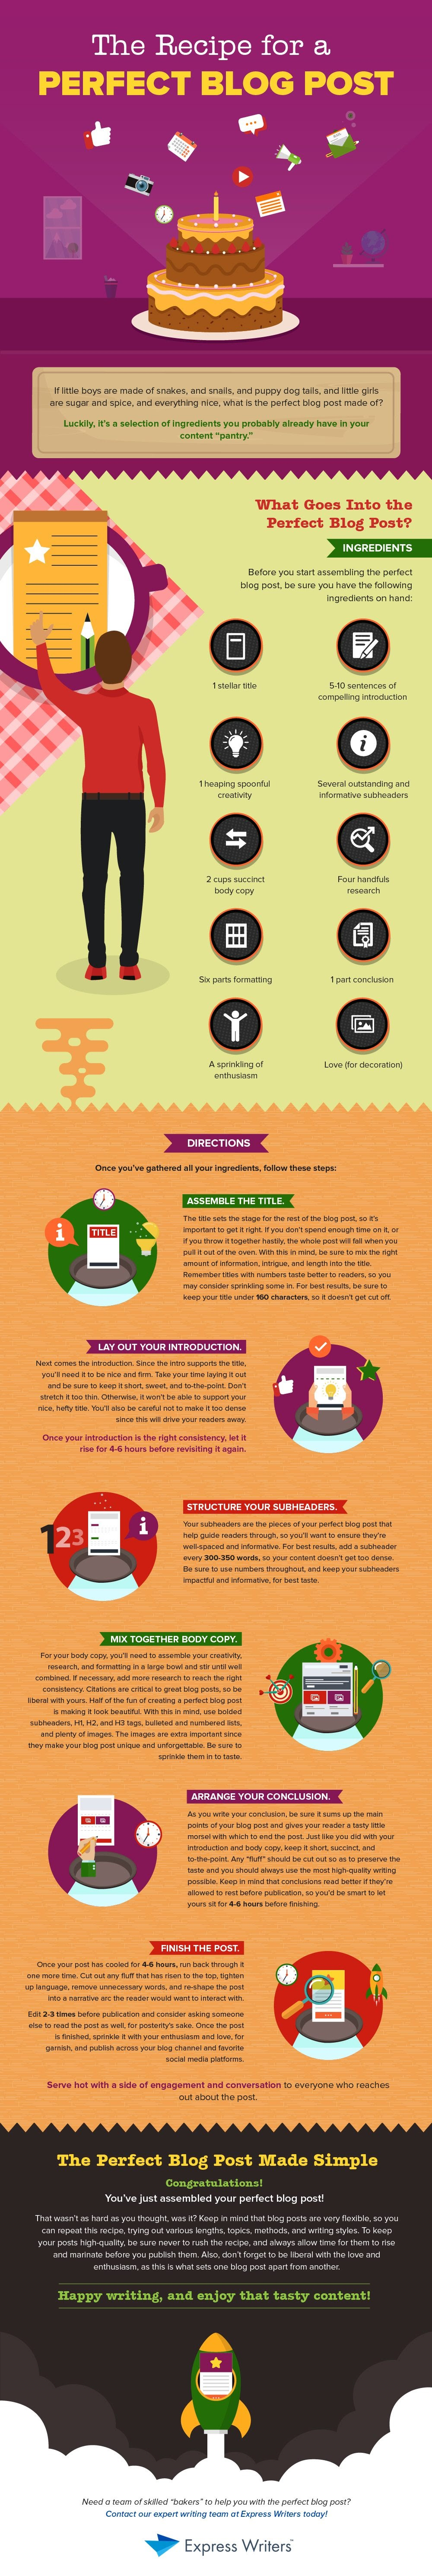 The Recipe for a Perfect Blog Post - #Infographic